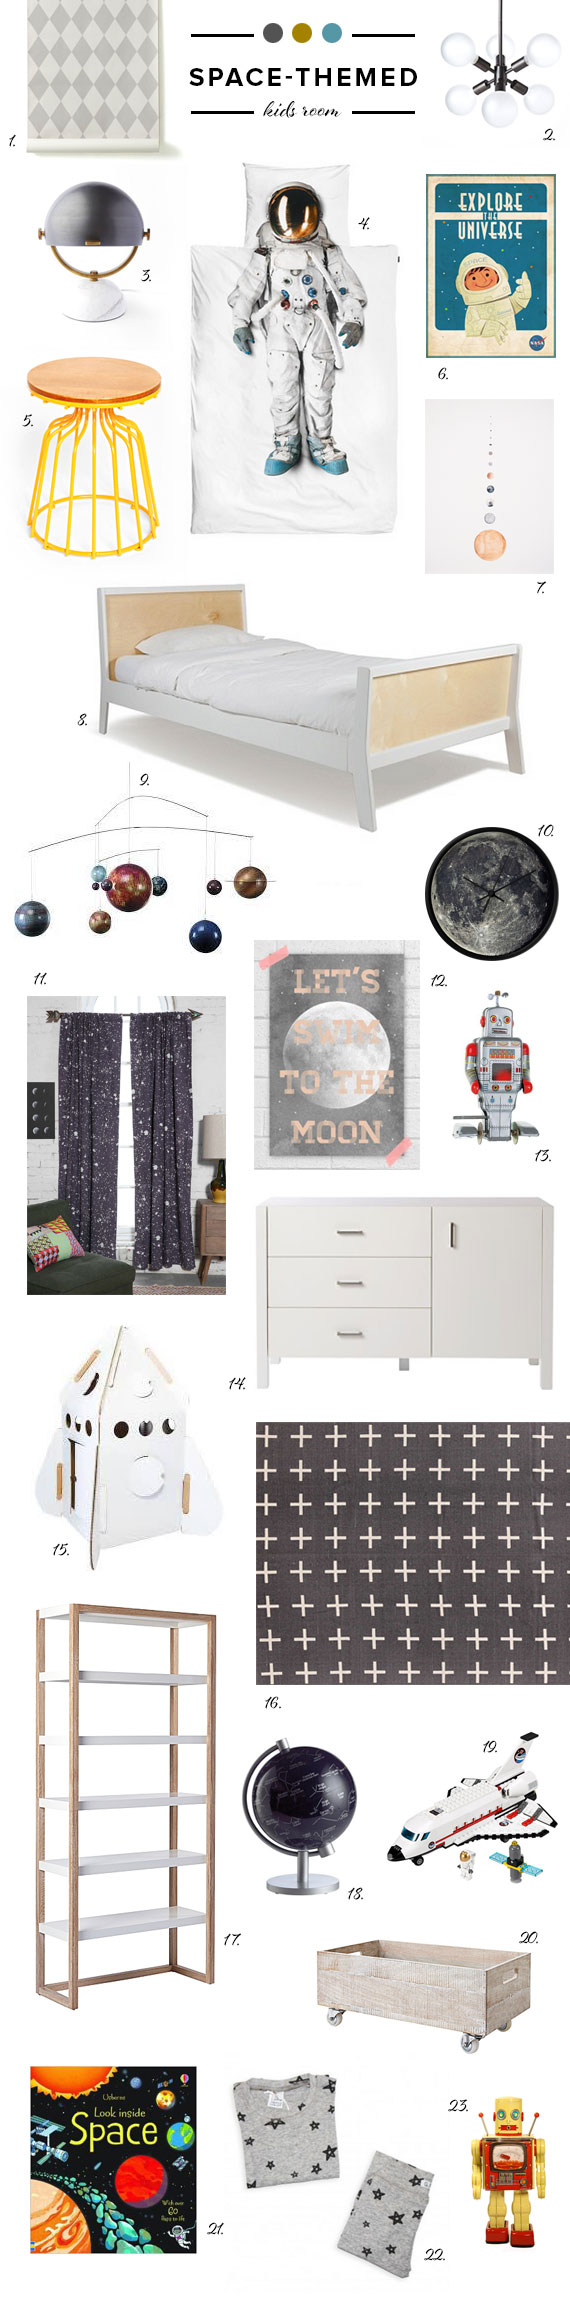 Space Themed Kids Room Ideas Nursery Kids Room Decor